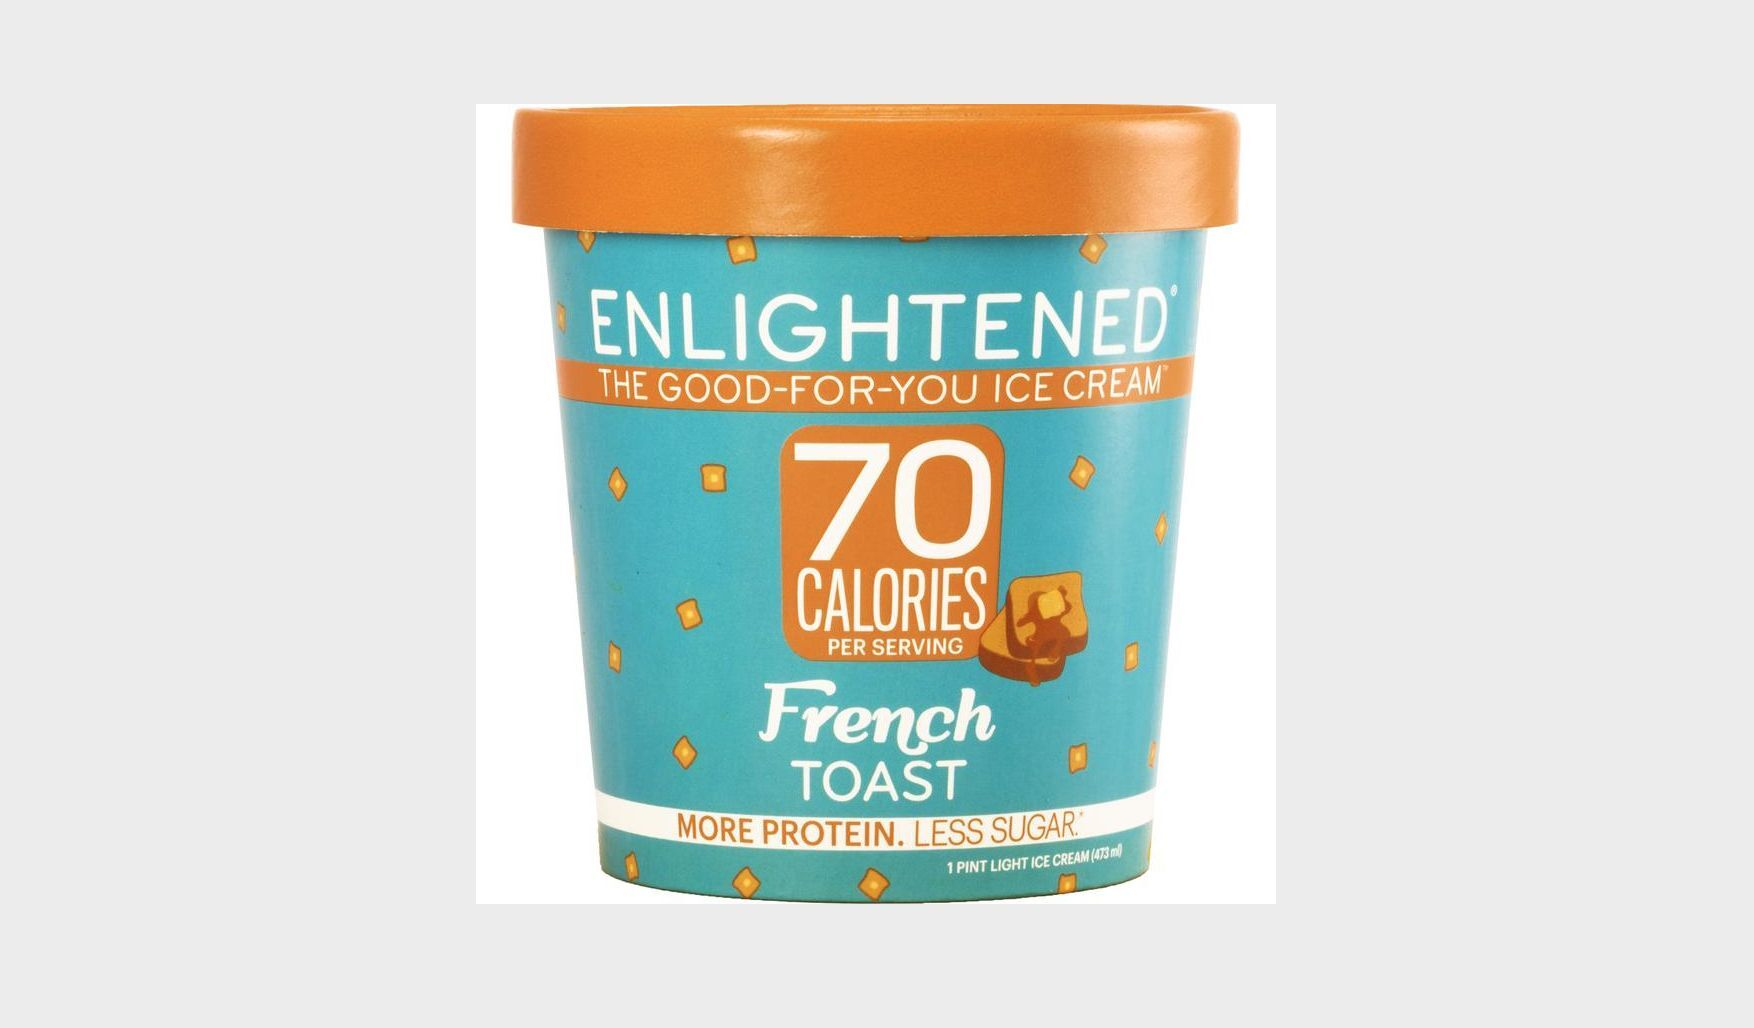 Enlightened Ice Cream: Is the French Toast flavor any good?